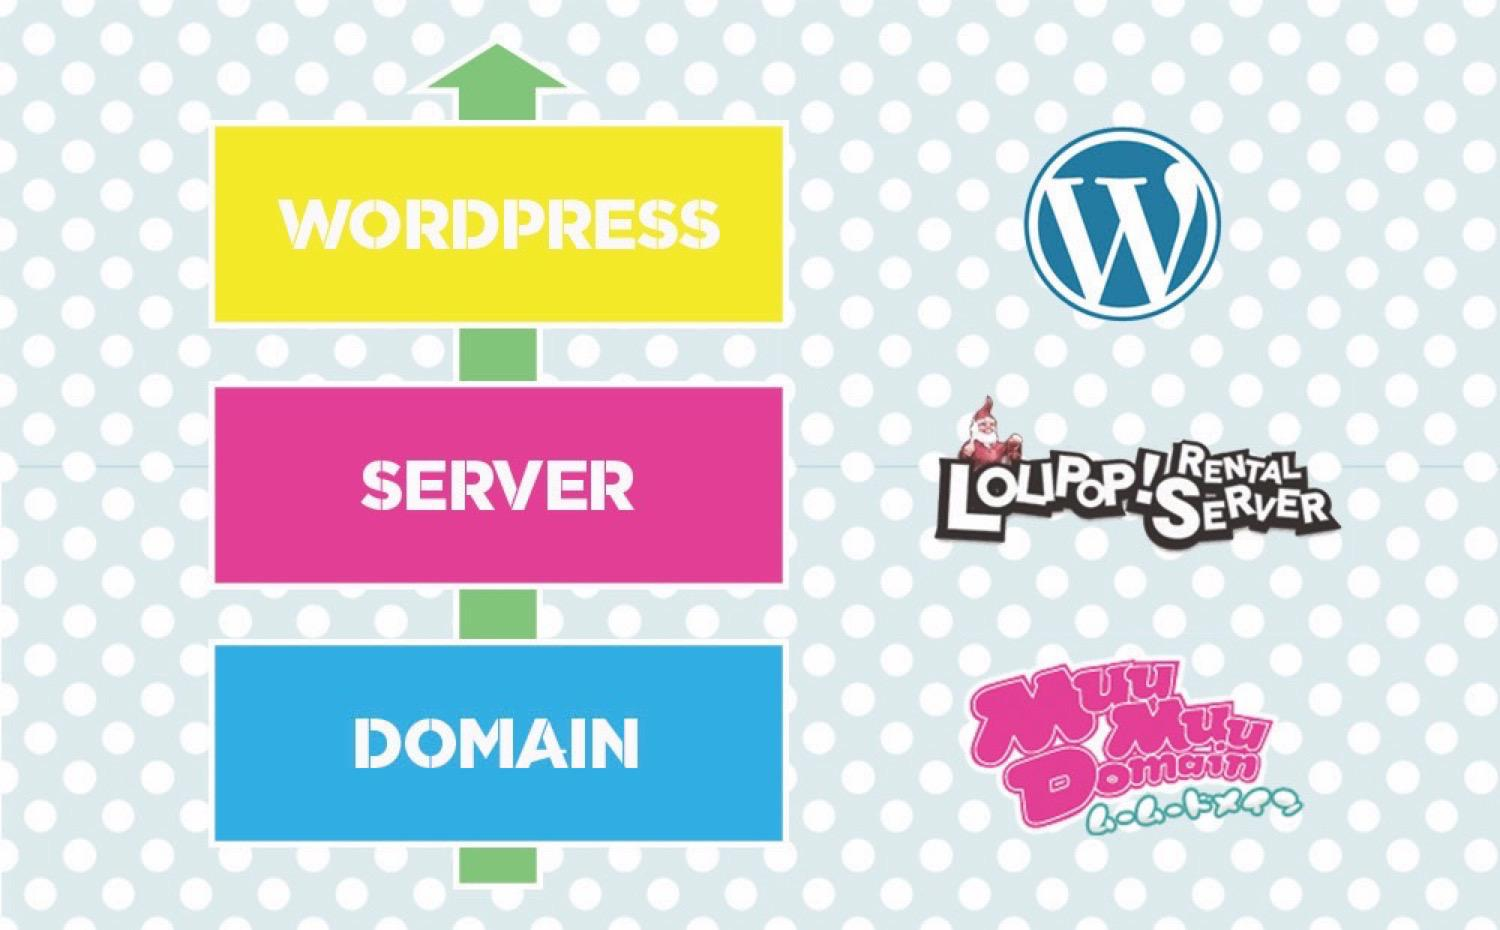 Wordpress domain1